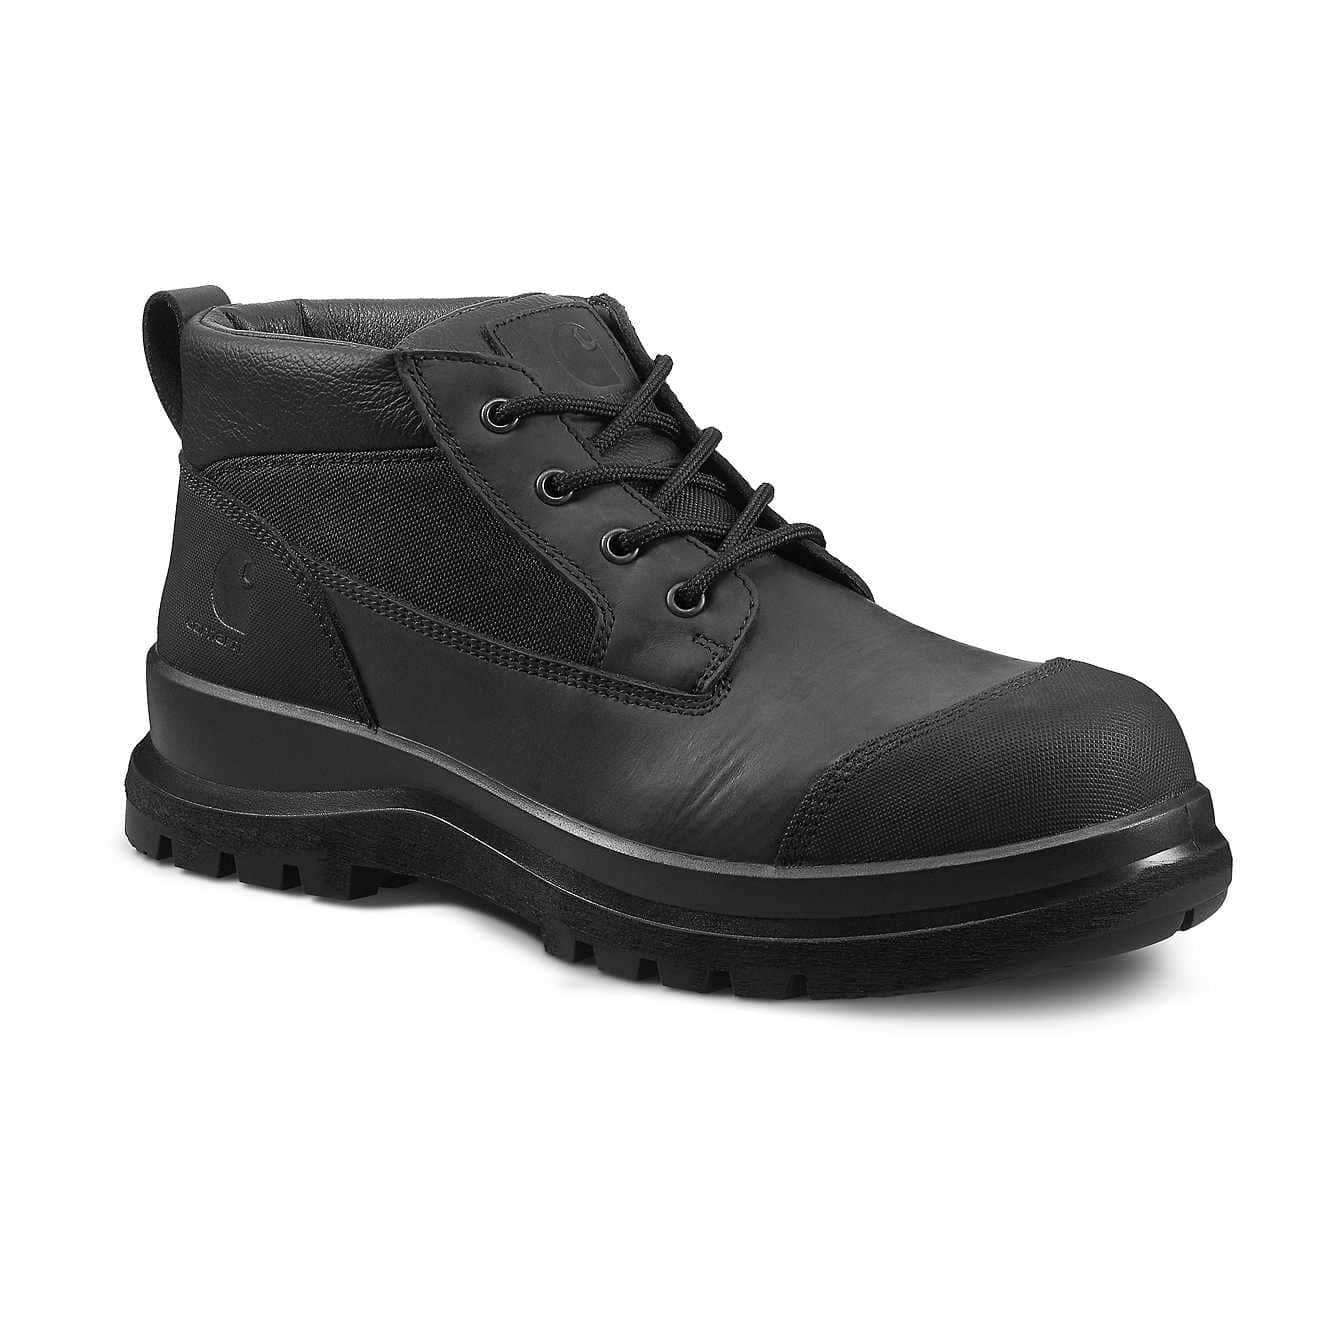 Picture of DETROIT RUGGED FLEX® S3 CHUKKA SAFETY BOOT